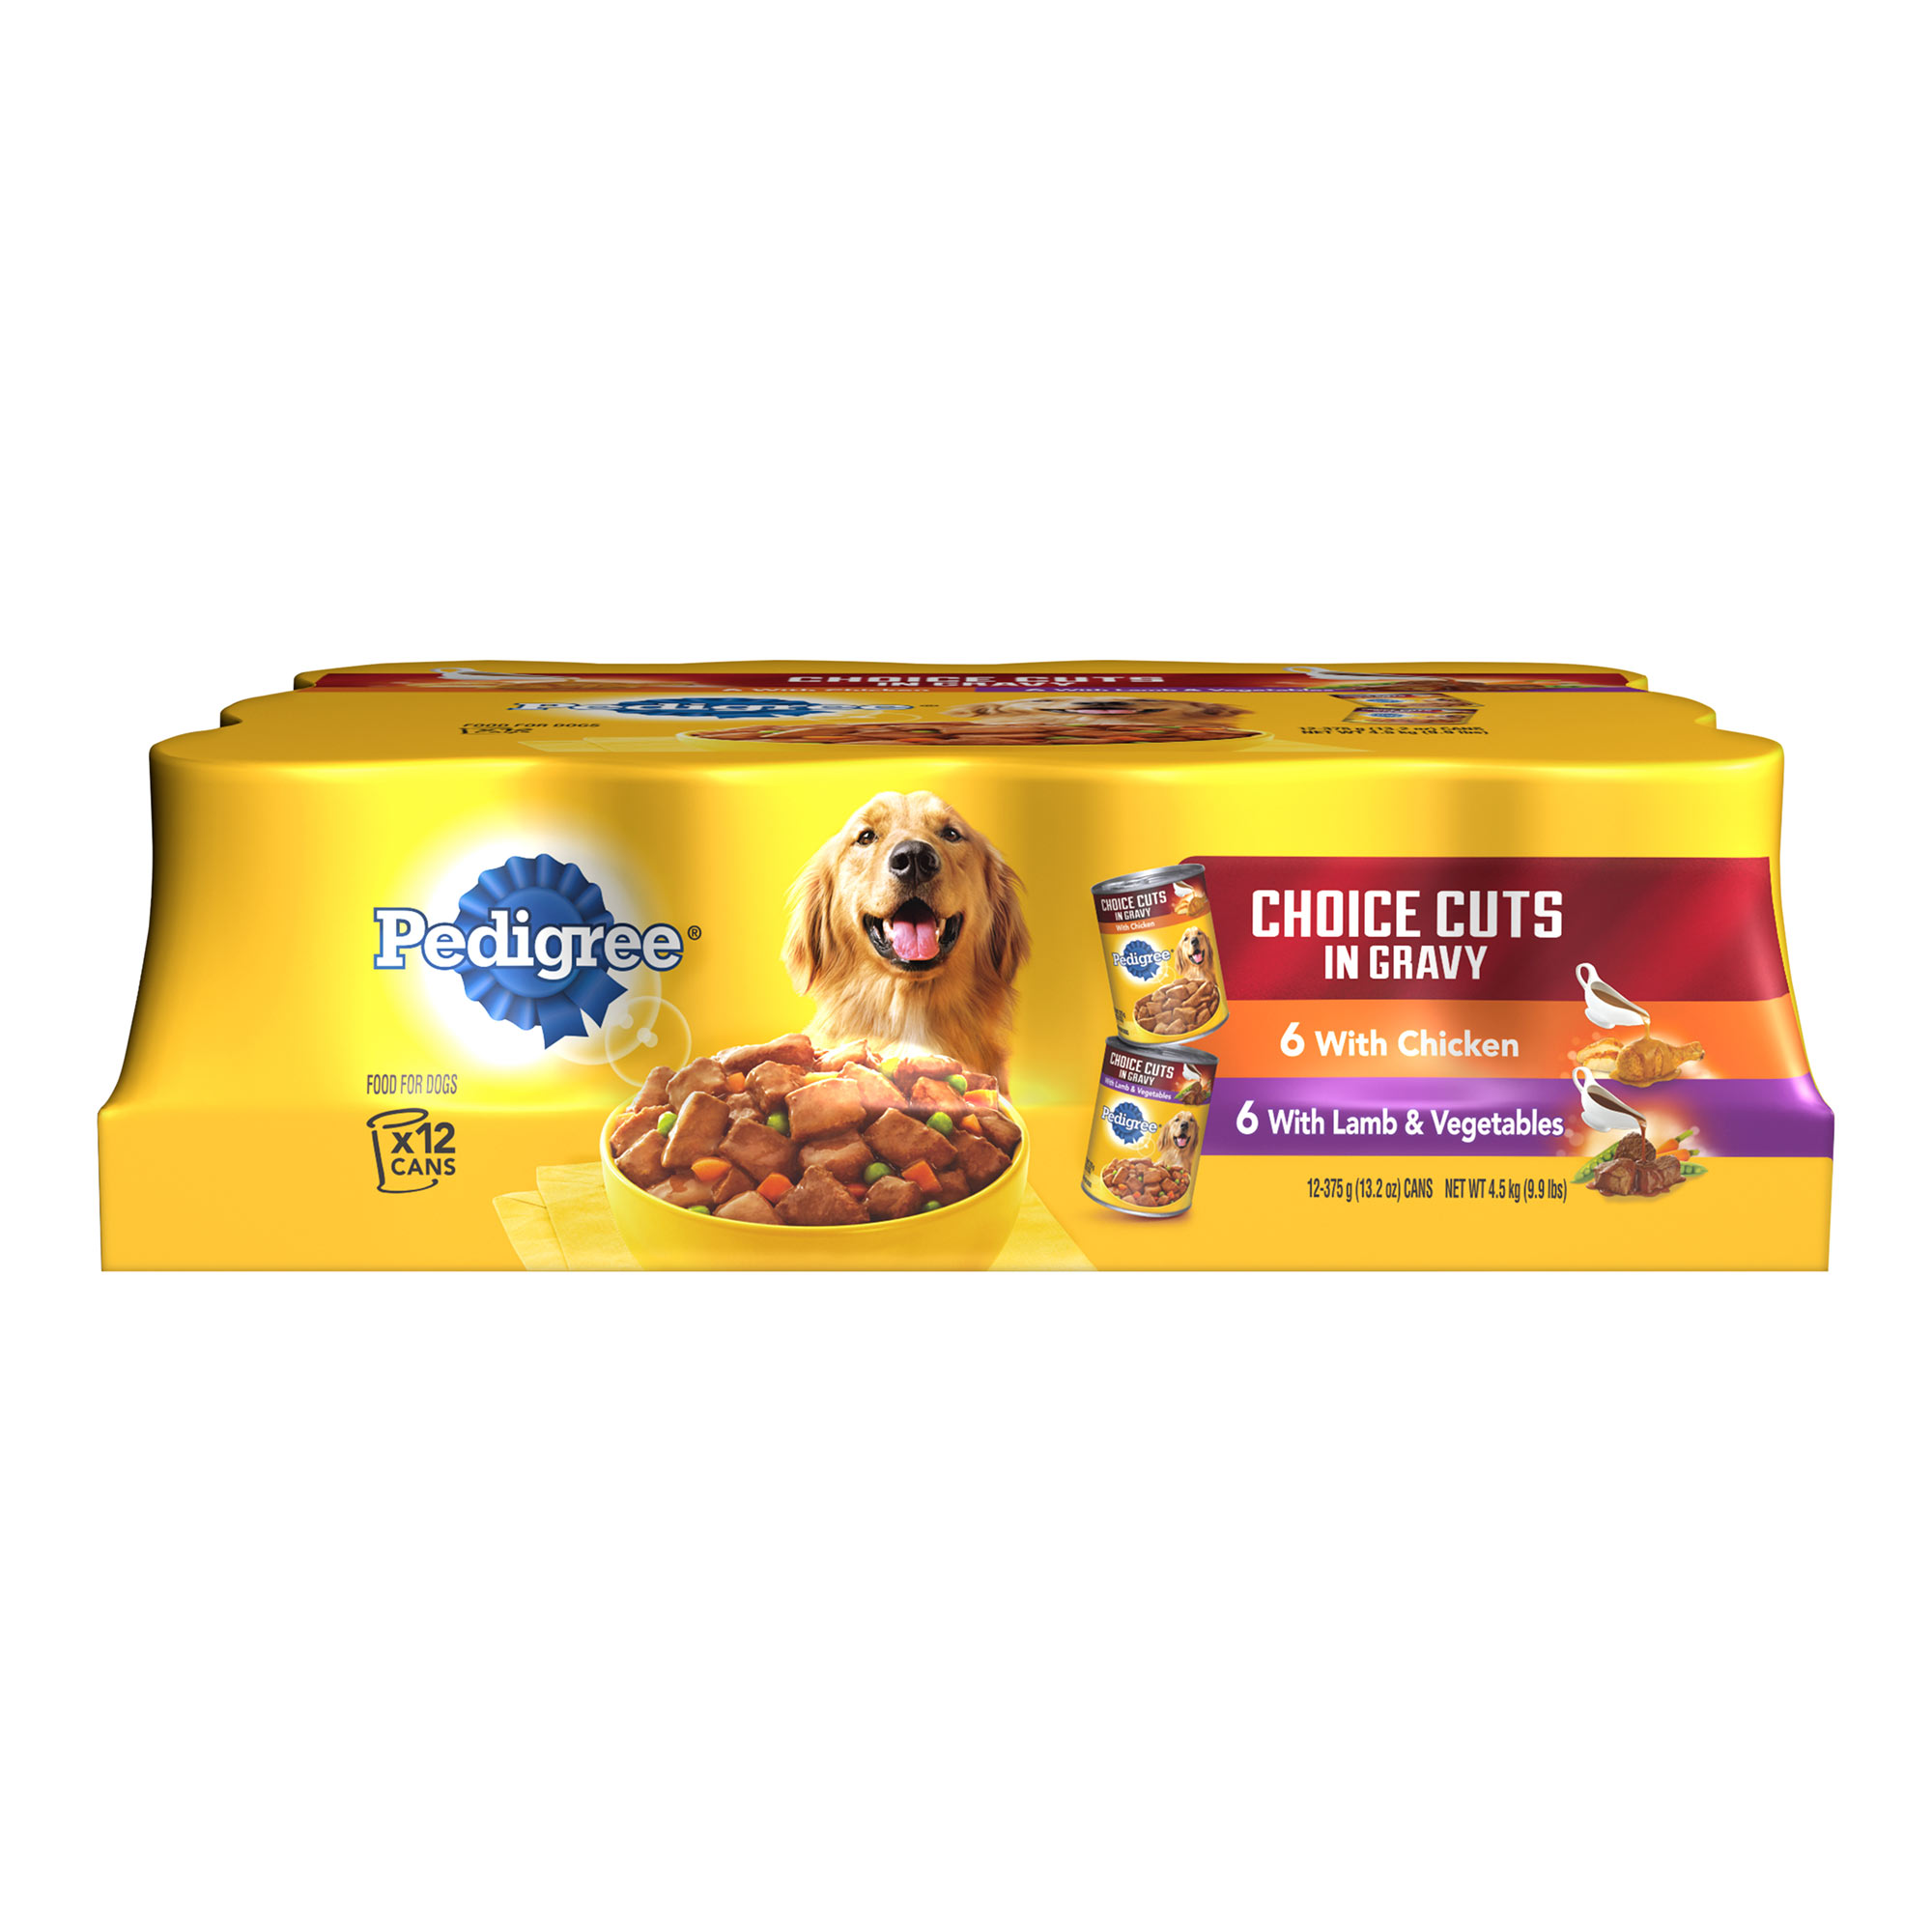 Pedigree Choice Cuts In Gravy Variety Pack Chicken And Lamb Wet Dog Food, 13.2 Oz (Pack Of 12)